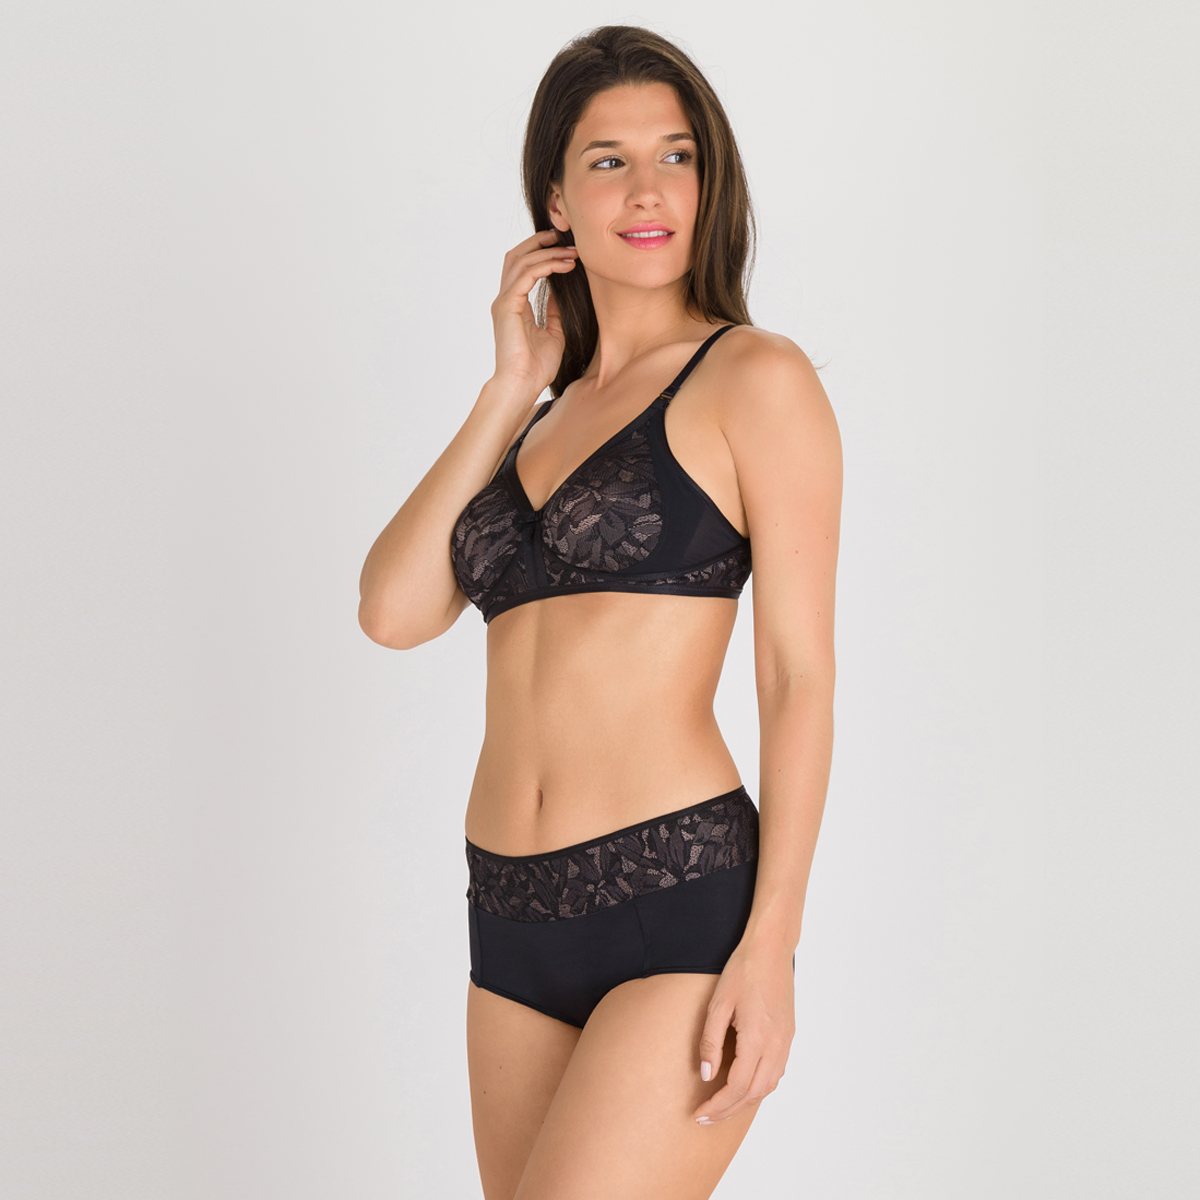 Sujetador sin aros negro gris - Ideal Beauty Lace, , PLAYTEX